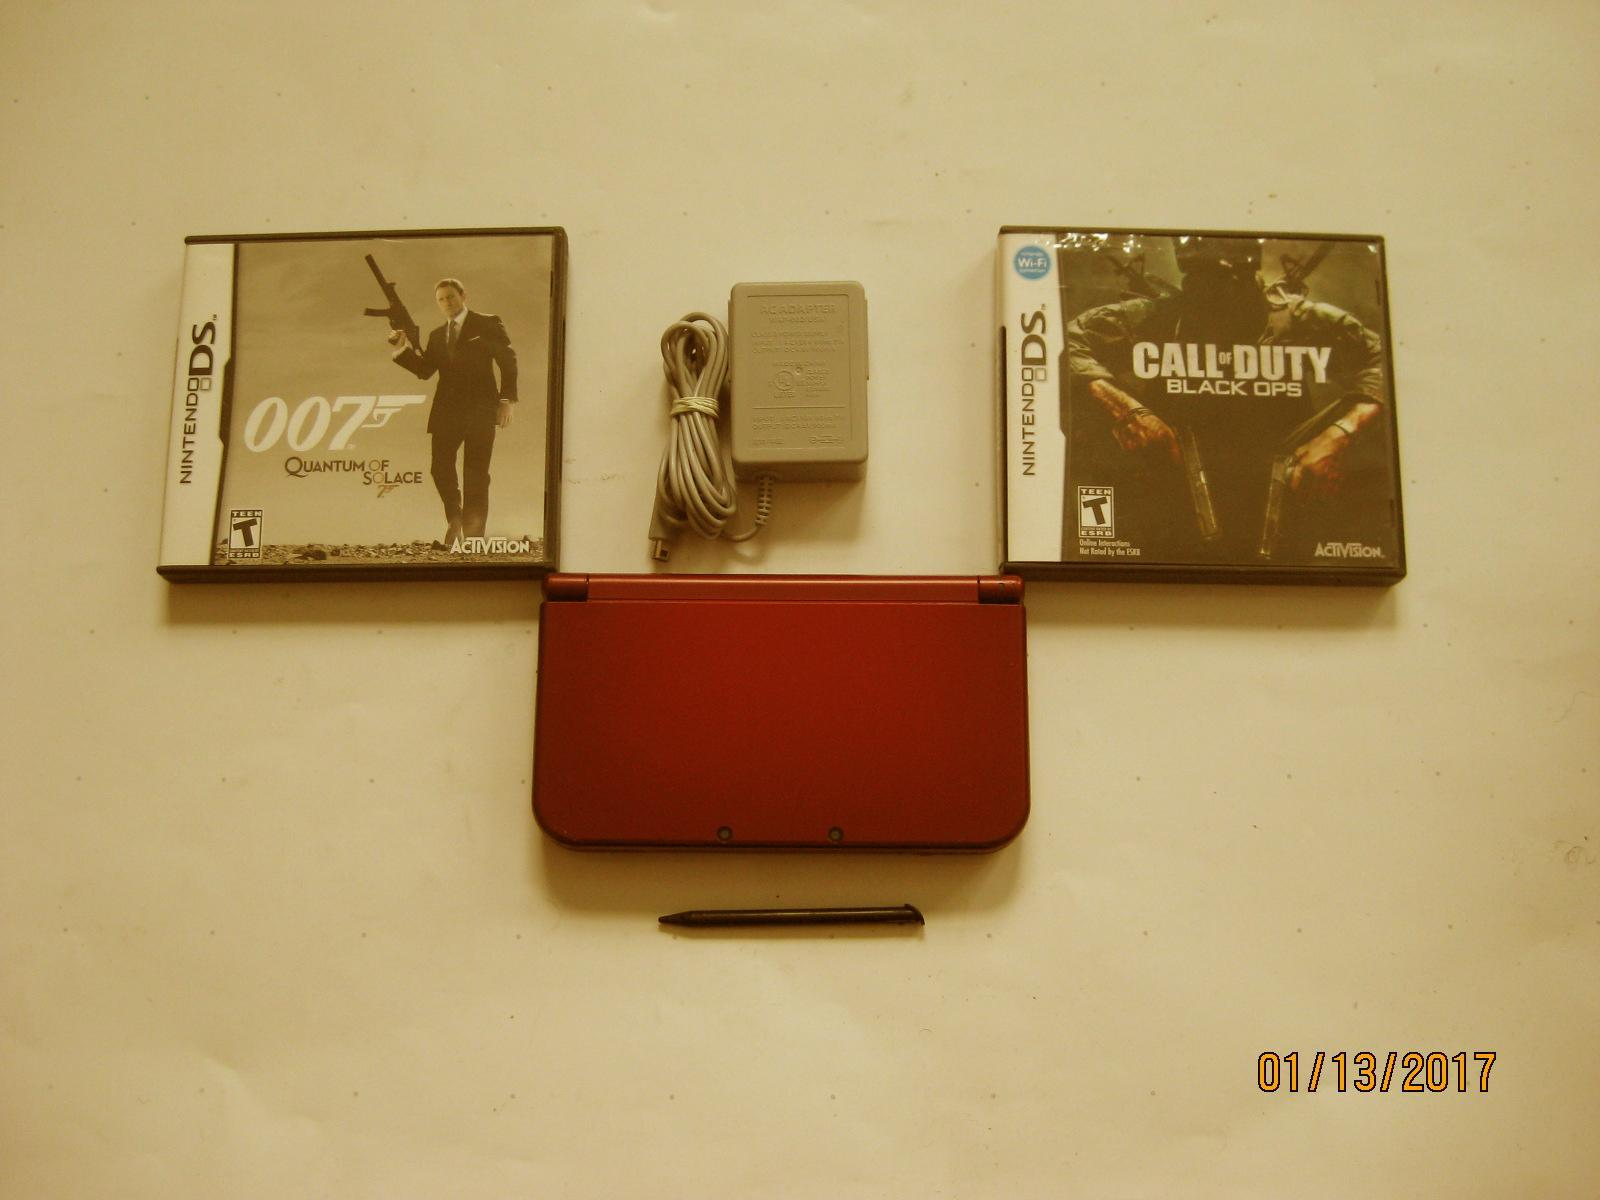 Primary image for Red Nintendo New 3ds xl w Black Ops & More!!!